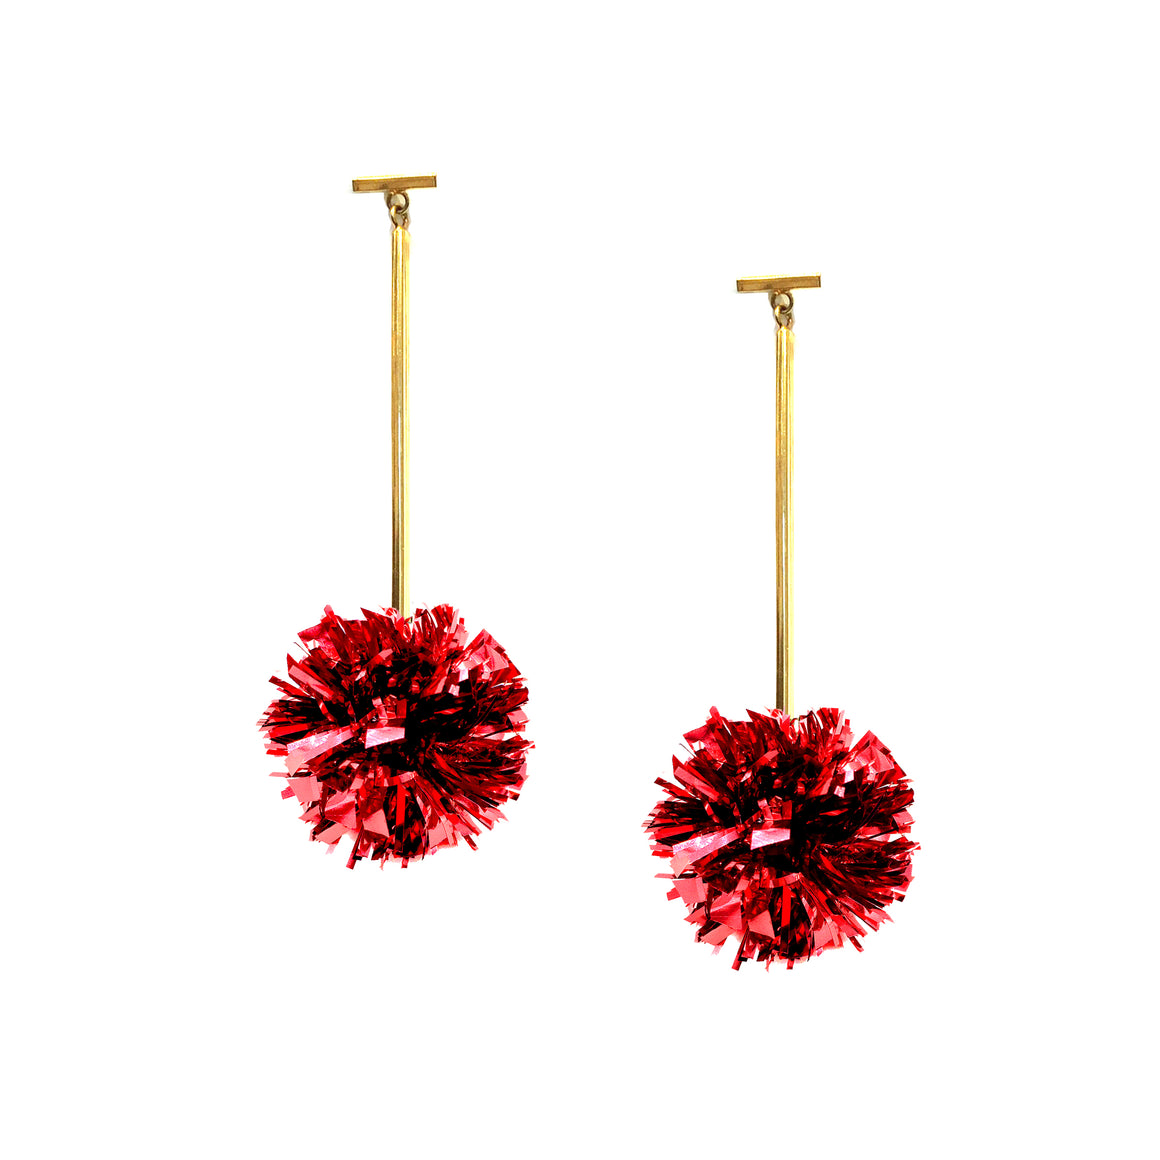 "1"" Red Lurex Pom Pom T Bar Earrings, Earrings, Tuleste, Tuleste"